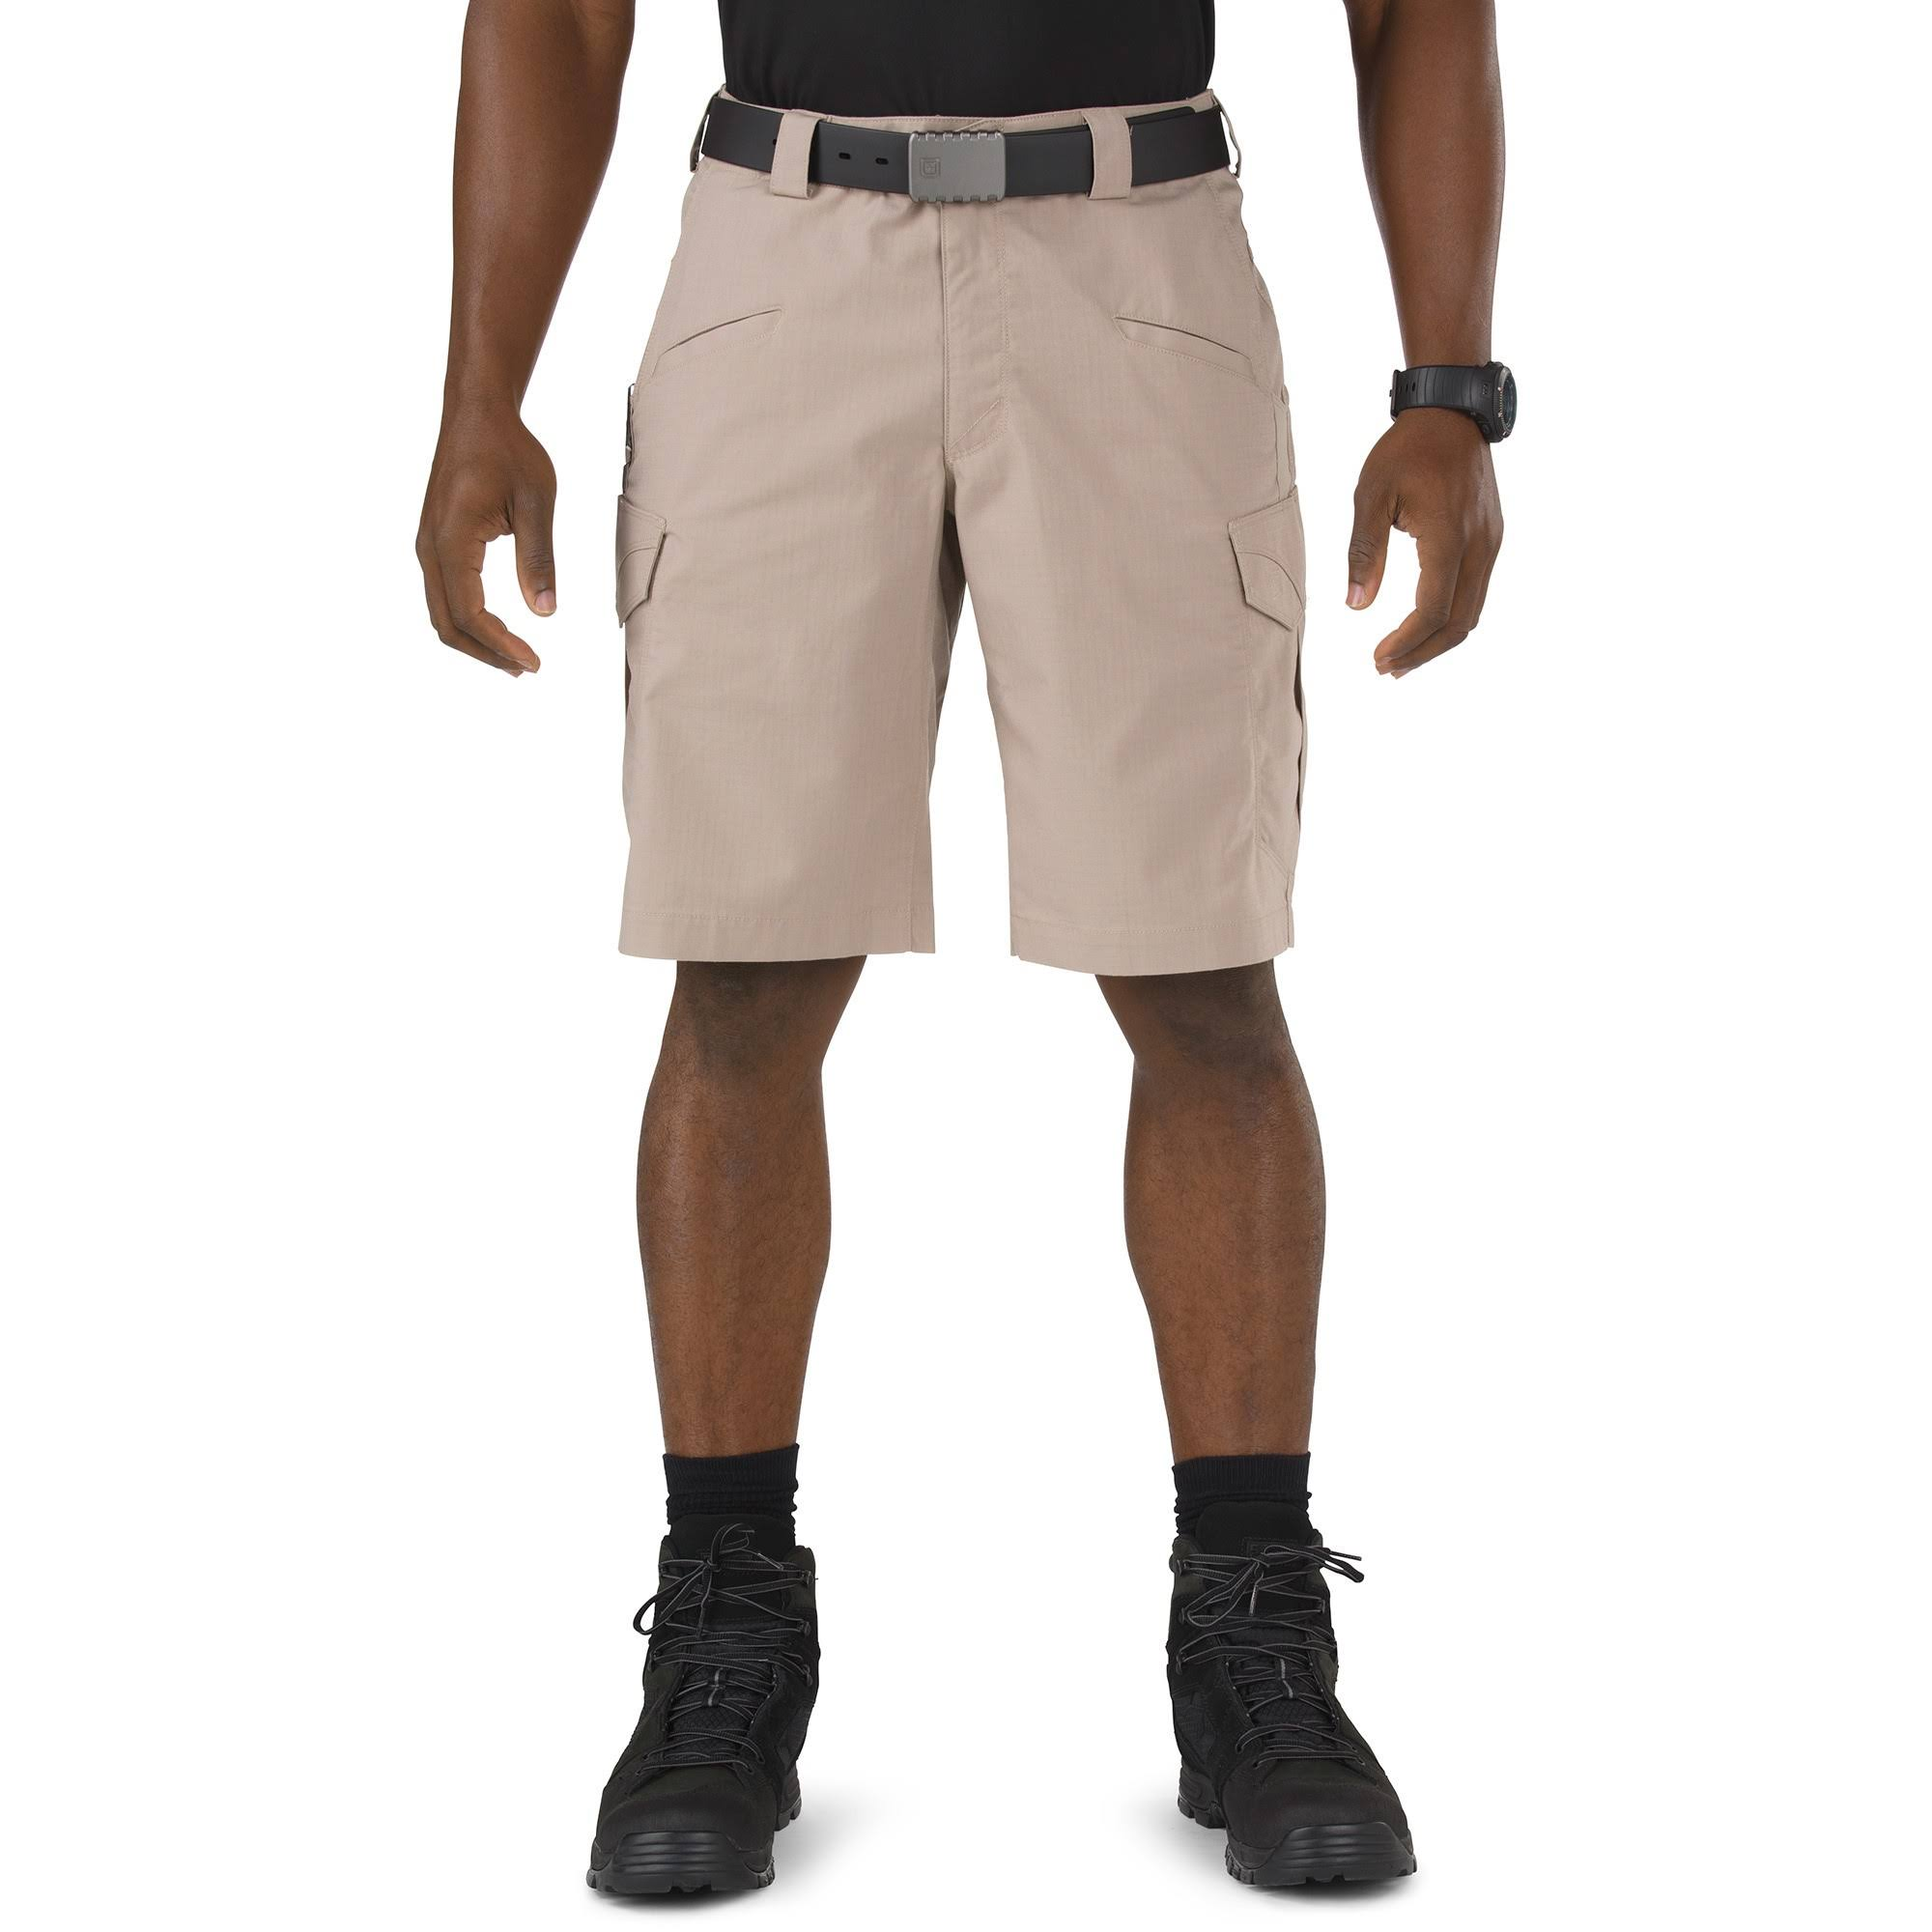 5.11 Tactical Stryke Shorts - Khaki - 73327-055-32